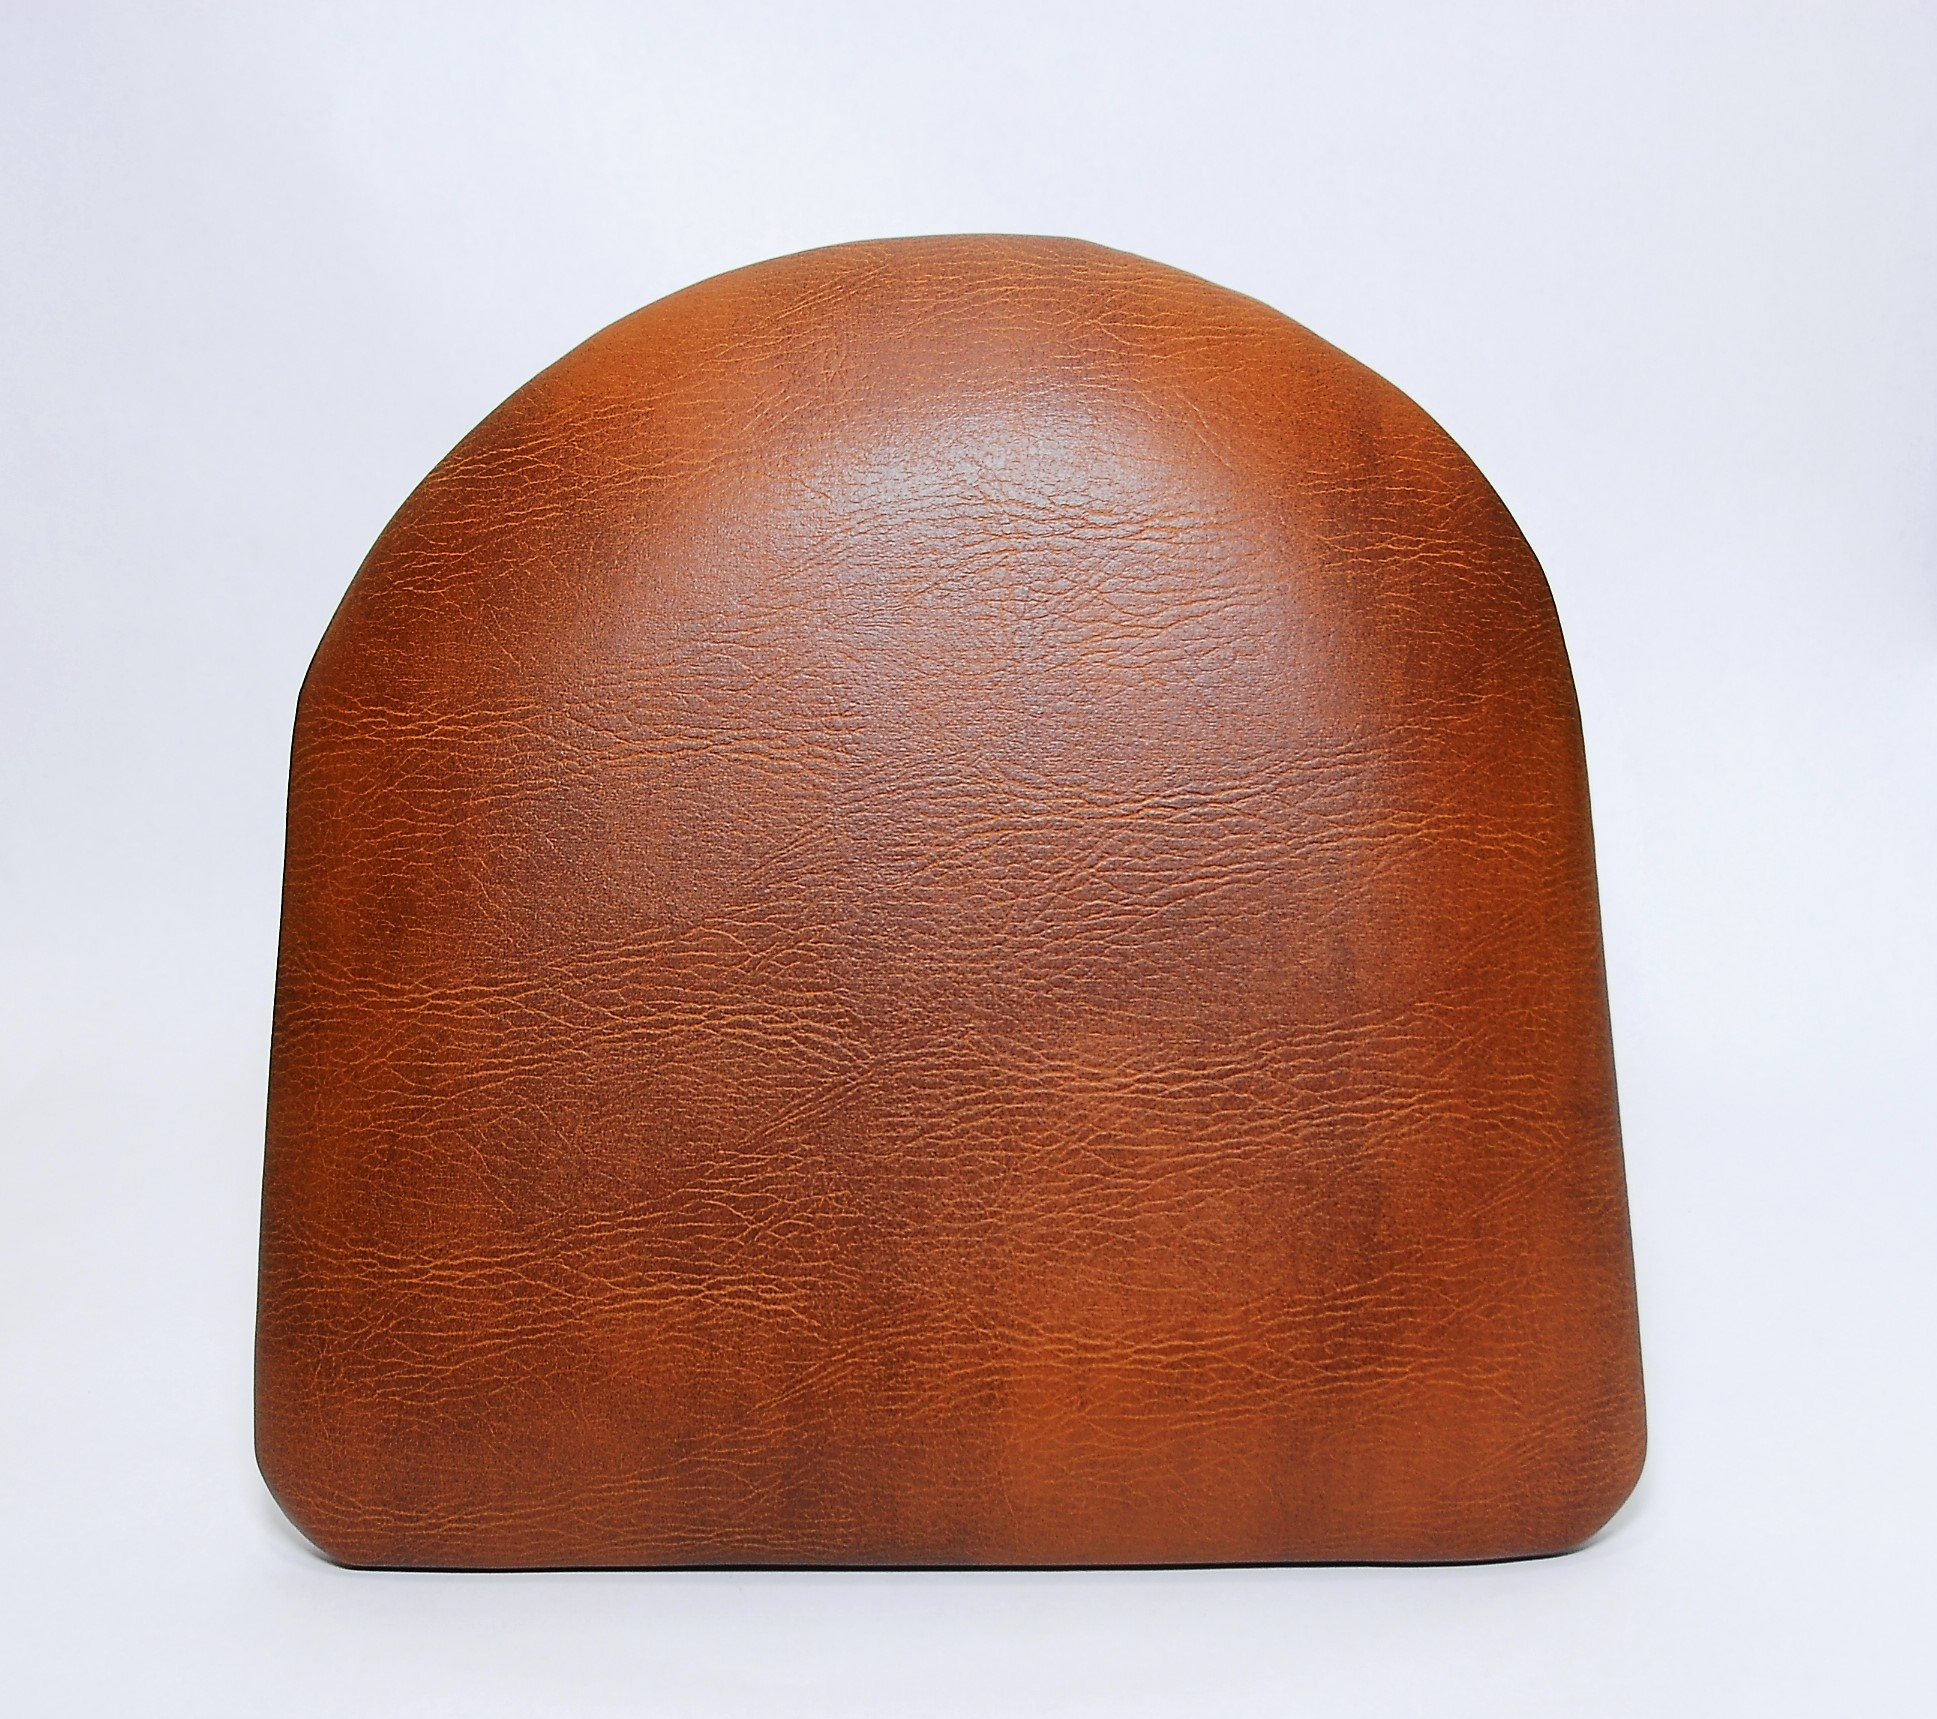 Iron Guard-Brown Cushion Seat, 2160/ 2301| Public Kitchen Supply